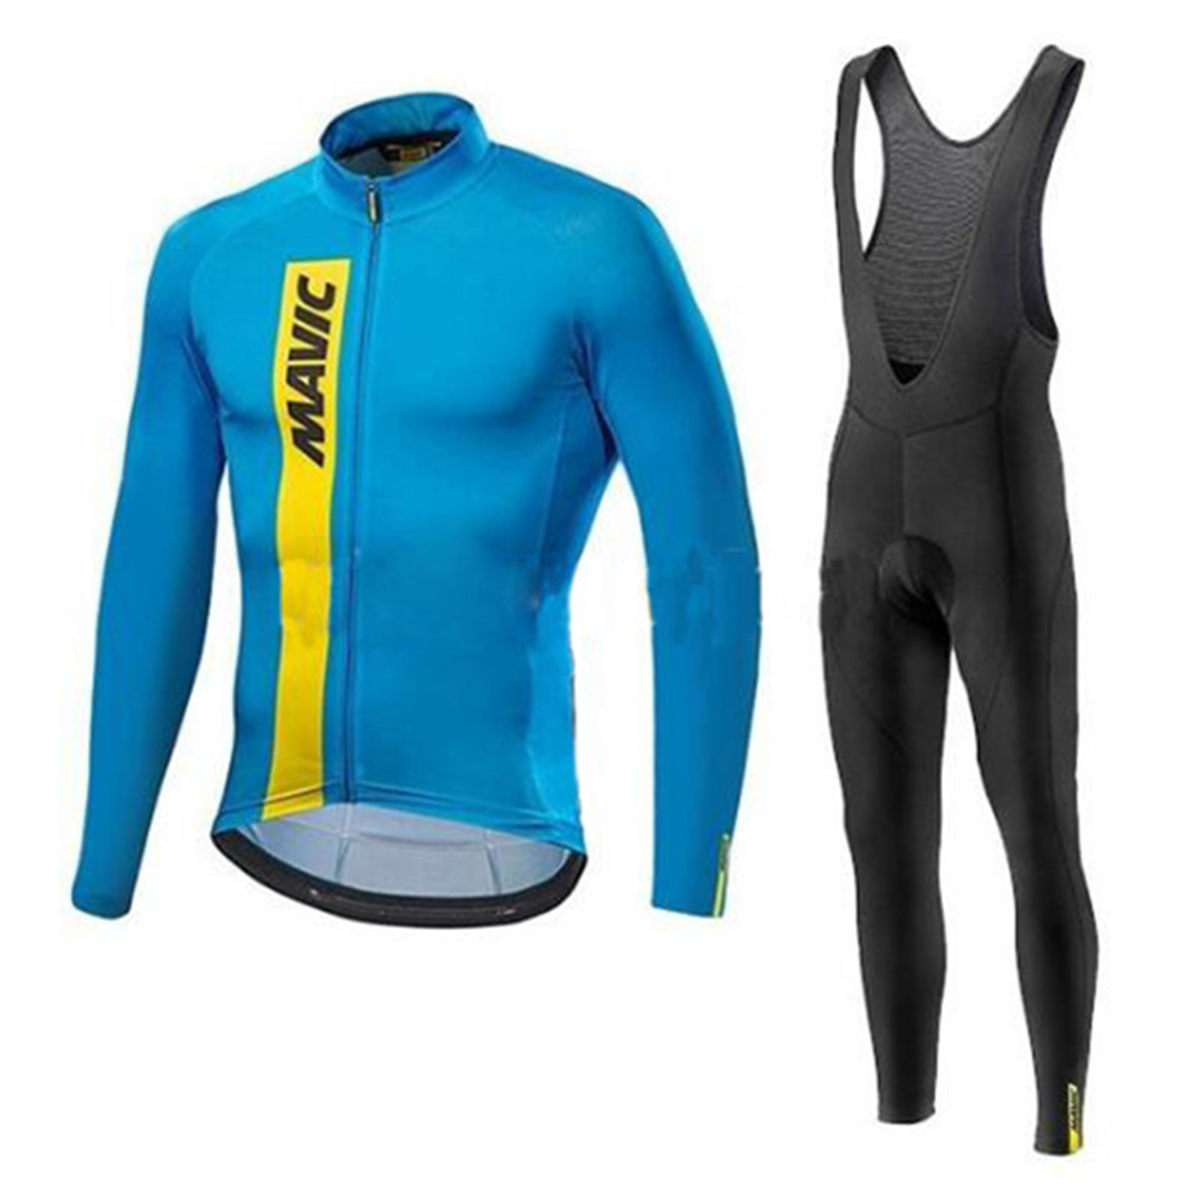 MAVIC New 2017 Breathable Long Sleeves Riding Wear Set Men`s Spring/Autumn Team Cycling Jersey Bicycle Clothing Fast drying